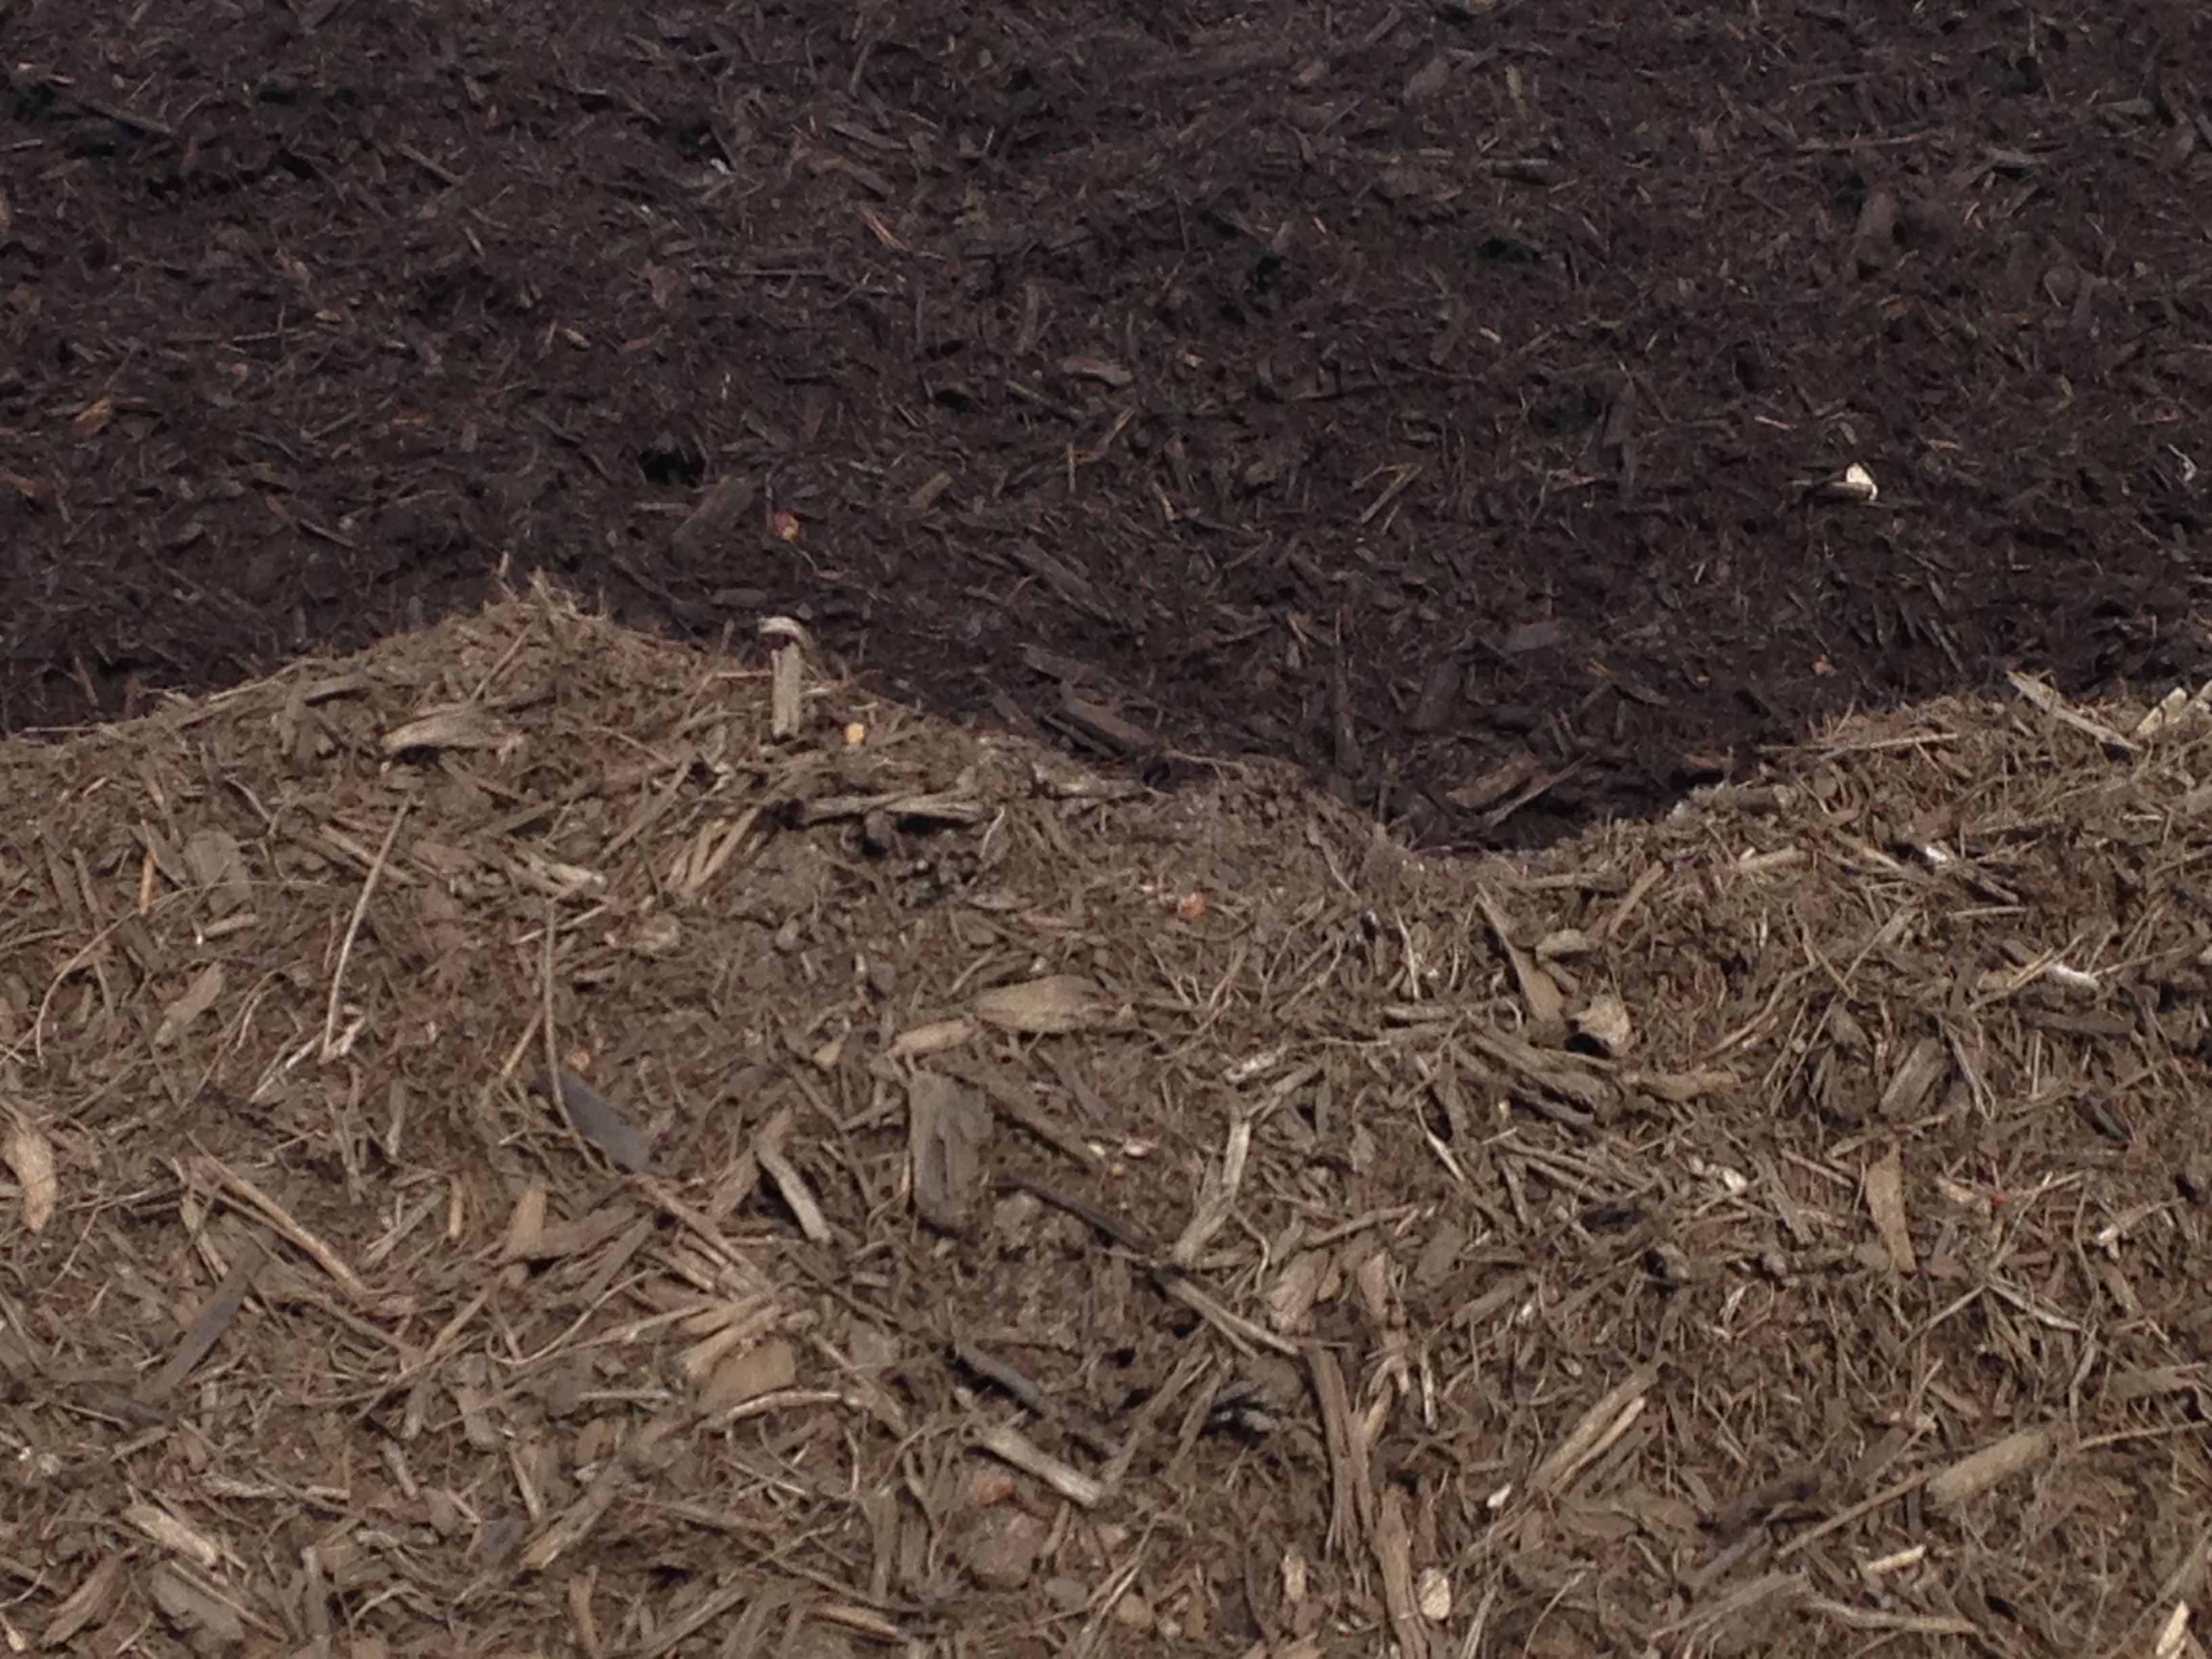 Mulch in brown and dark brown